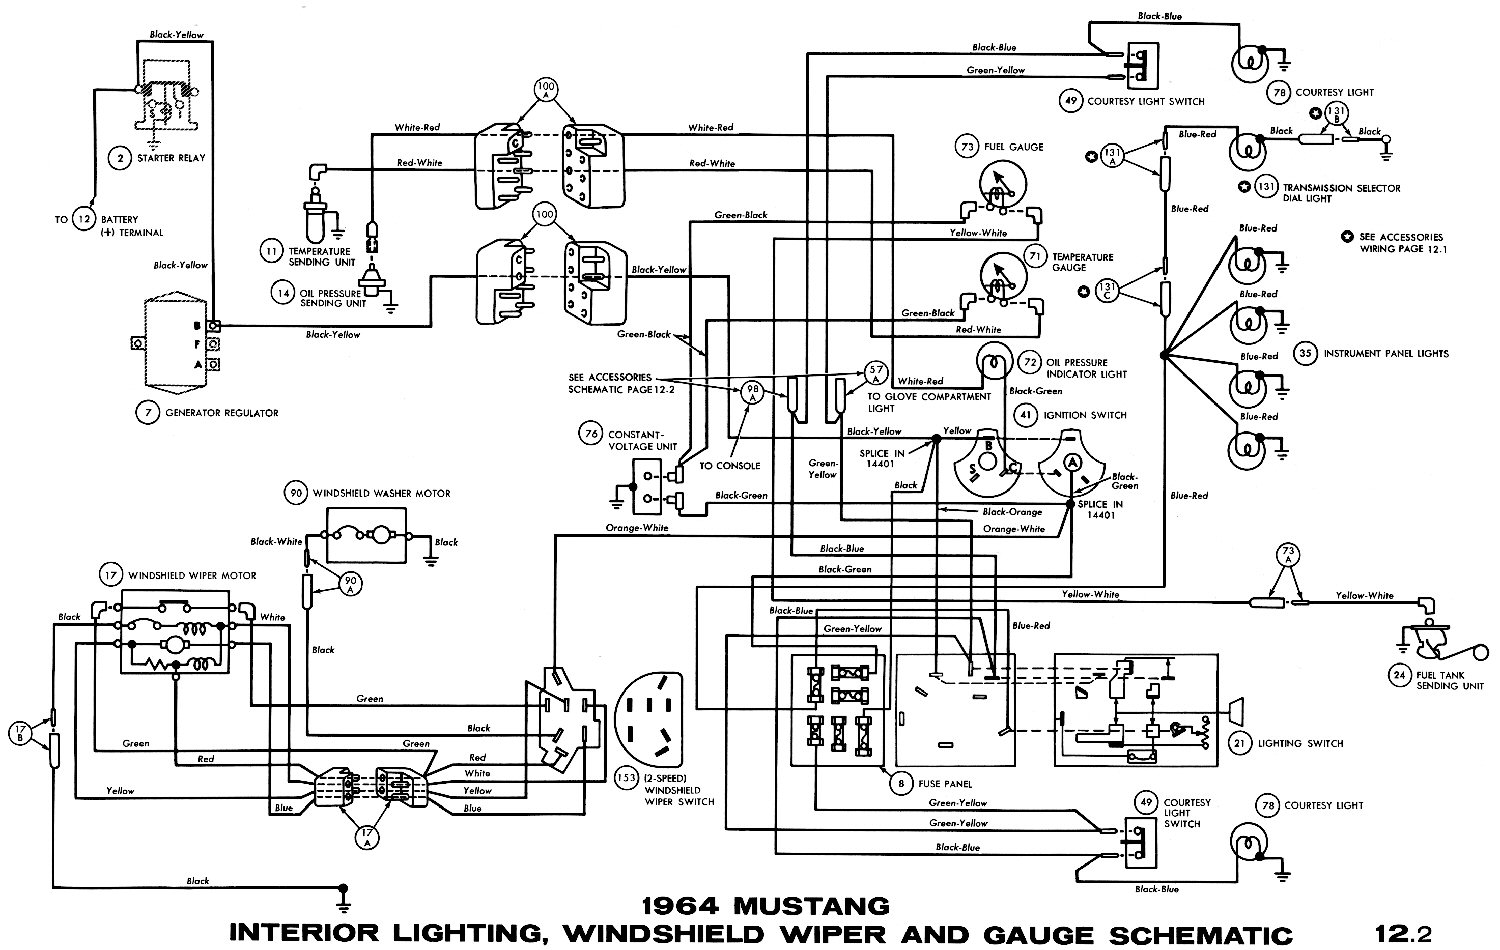 1964 ford mustang fuse box wiring diagram all data rh 20 2 feuerwehr randegg de